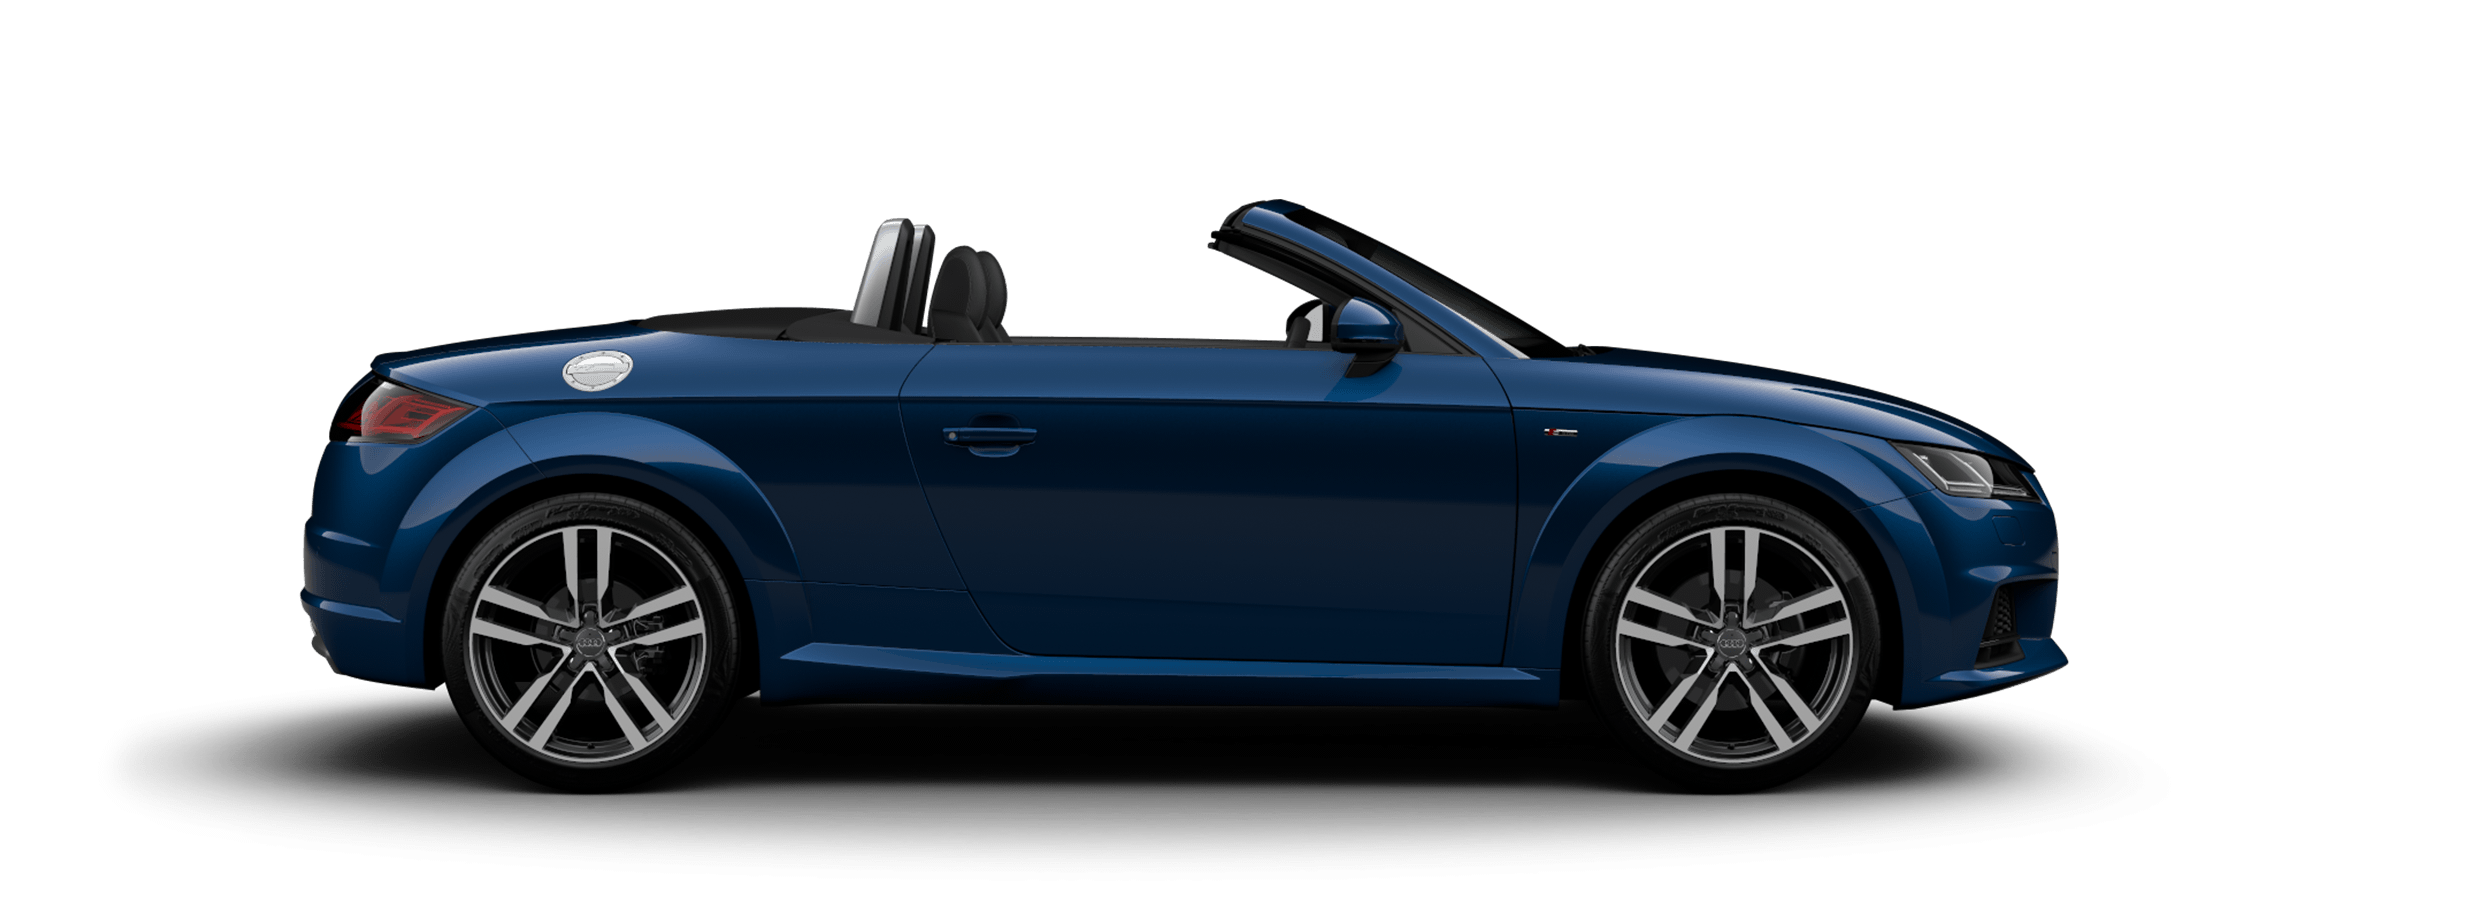 https://bluesky-cogcms.cdn.imgeng.in/media/62380/tt-roadster.png